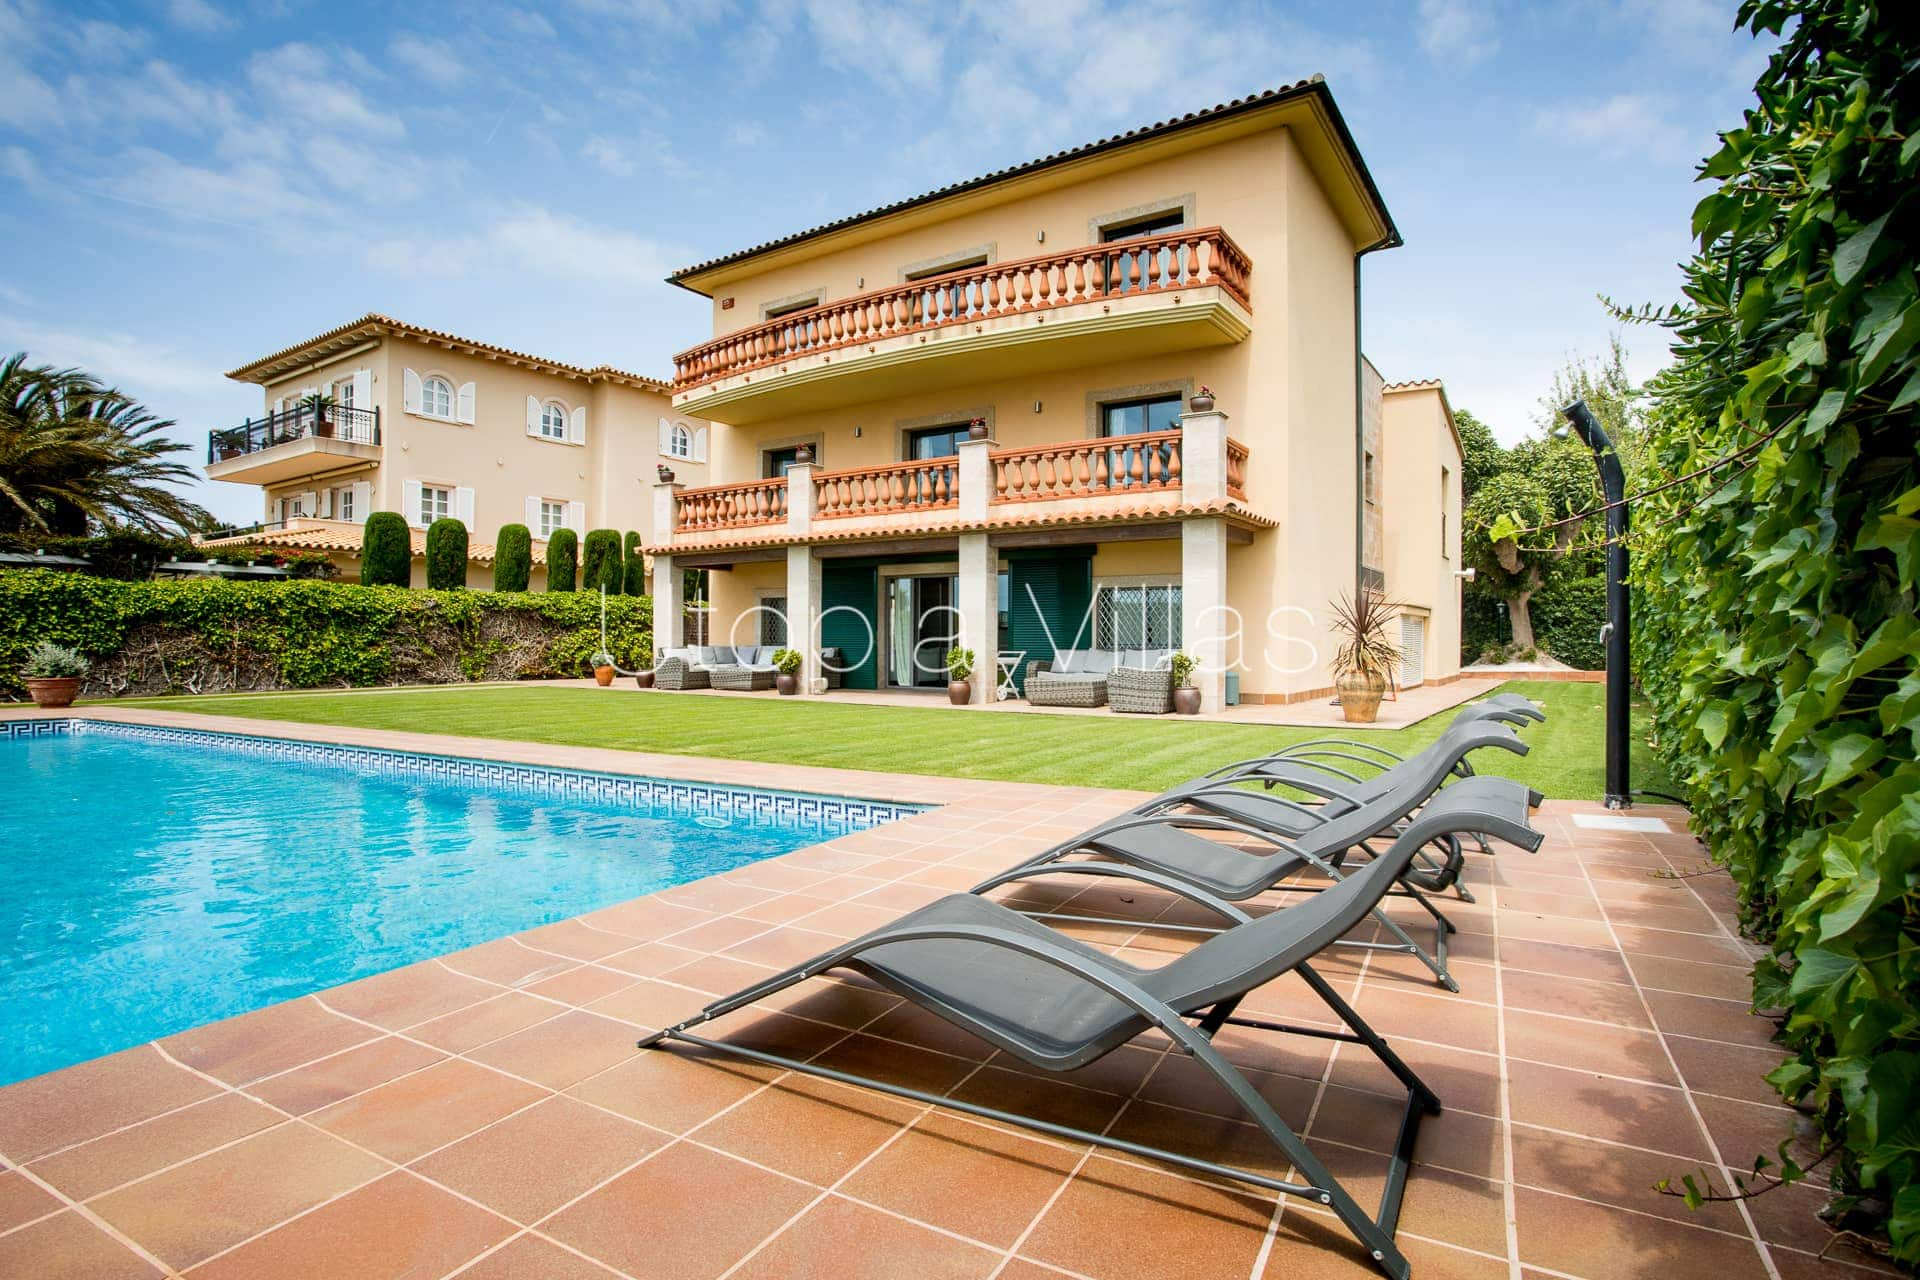 Villa Lola In Sitges A Few Steps From The Beach And